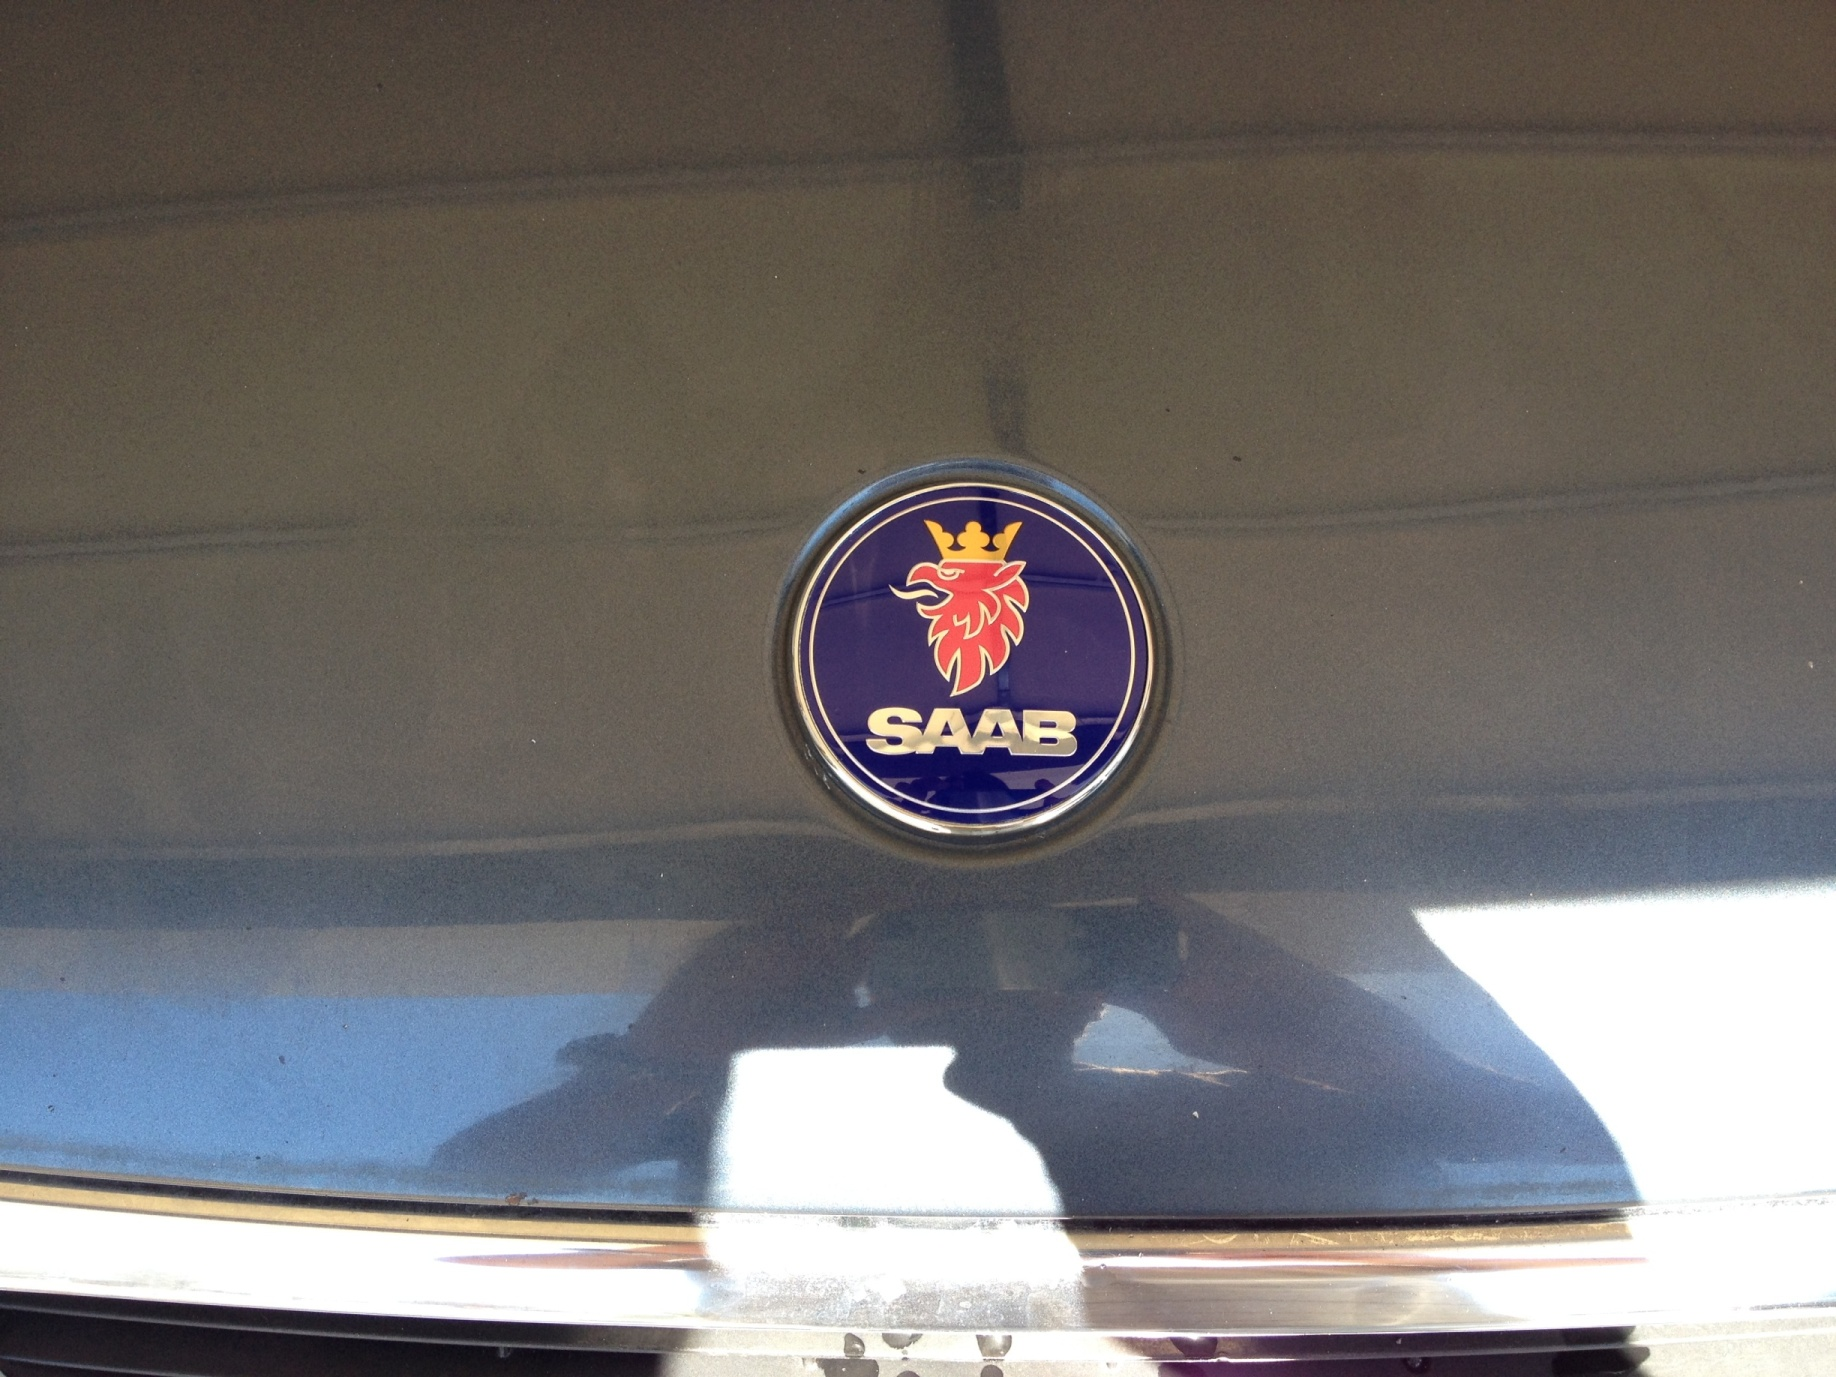 Letting the World know it's a Saab! - March and April 2014 - 19049536